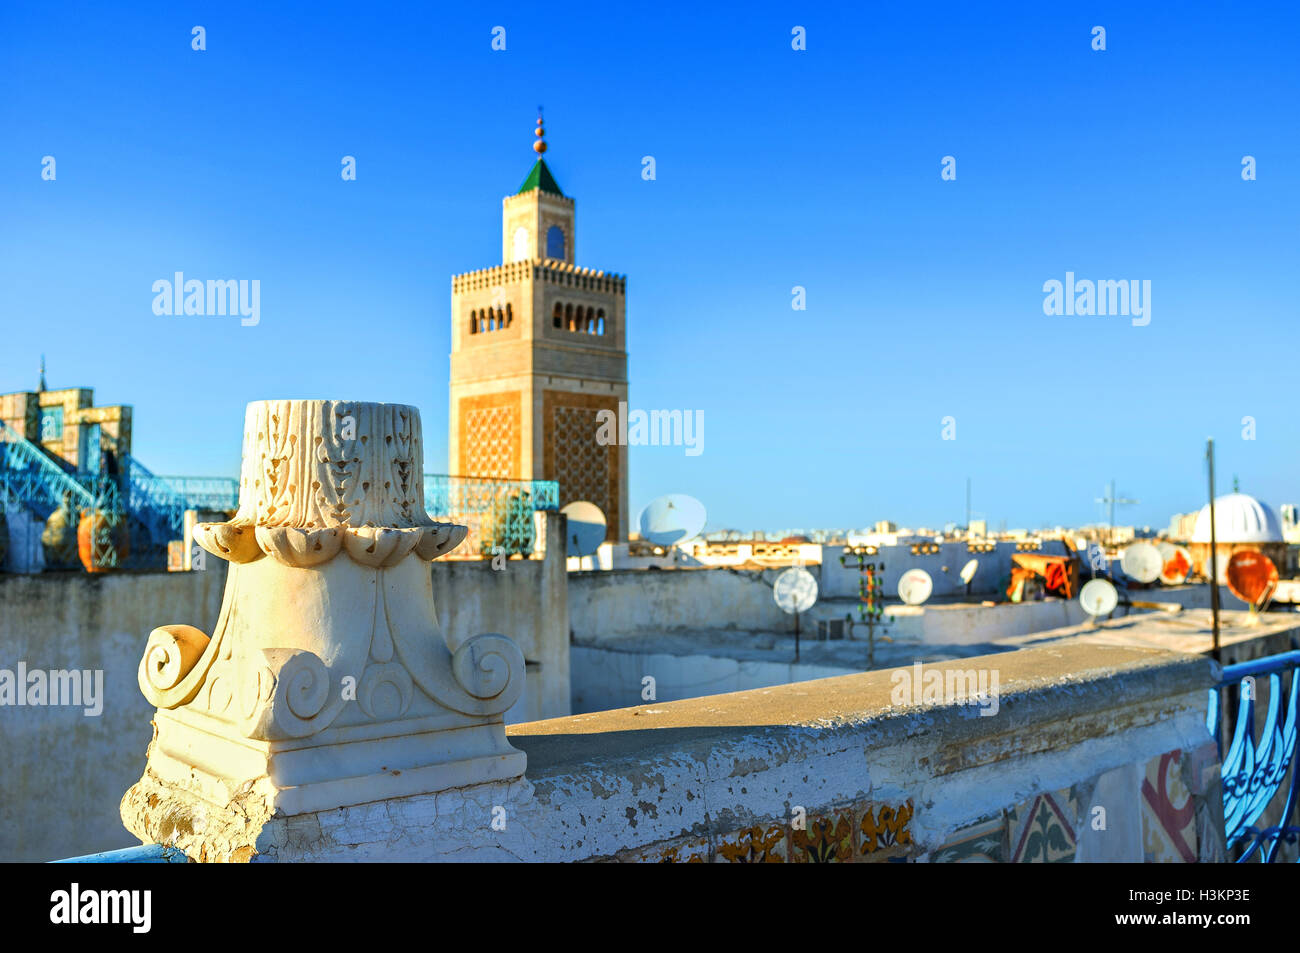 The ancient ruined column on the roof of the old house in Medina, Tunis, Tunisia. - Stock Image